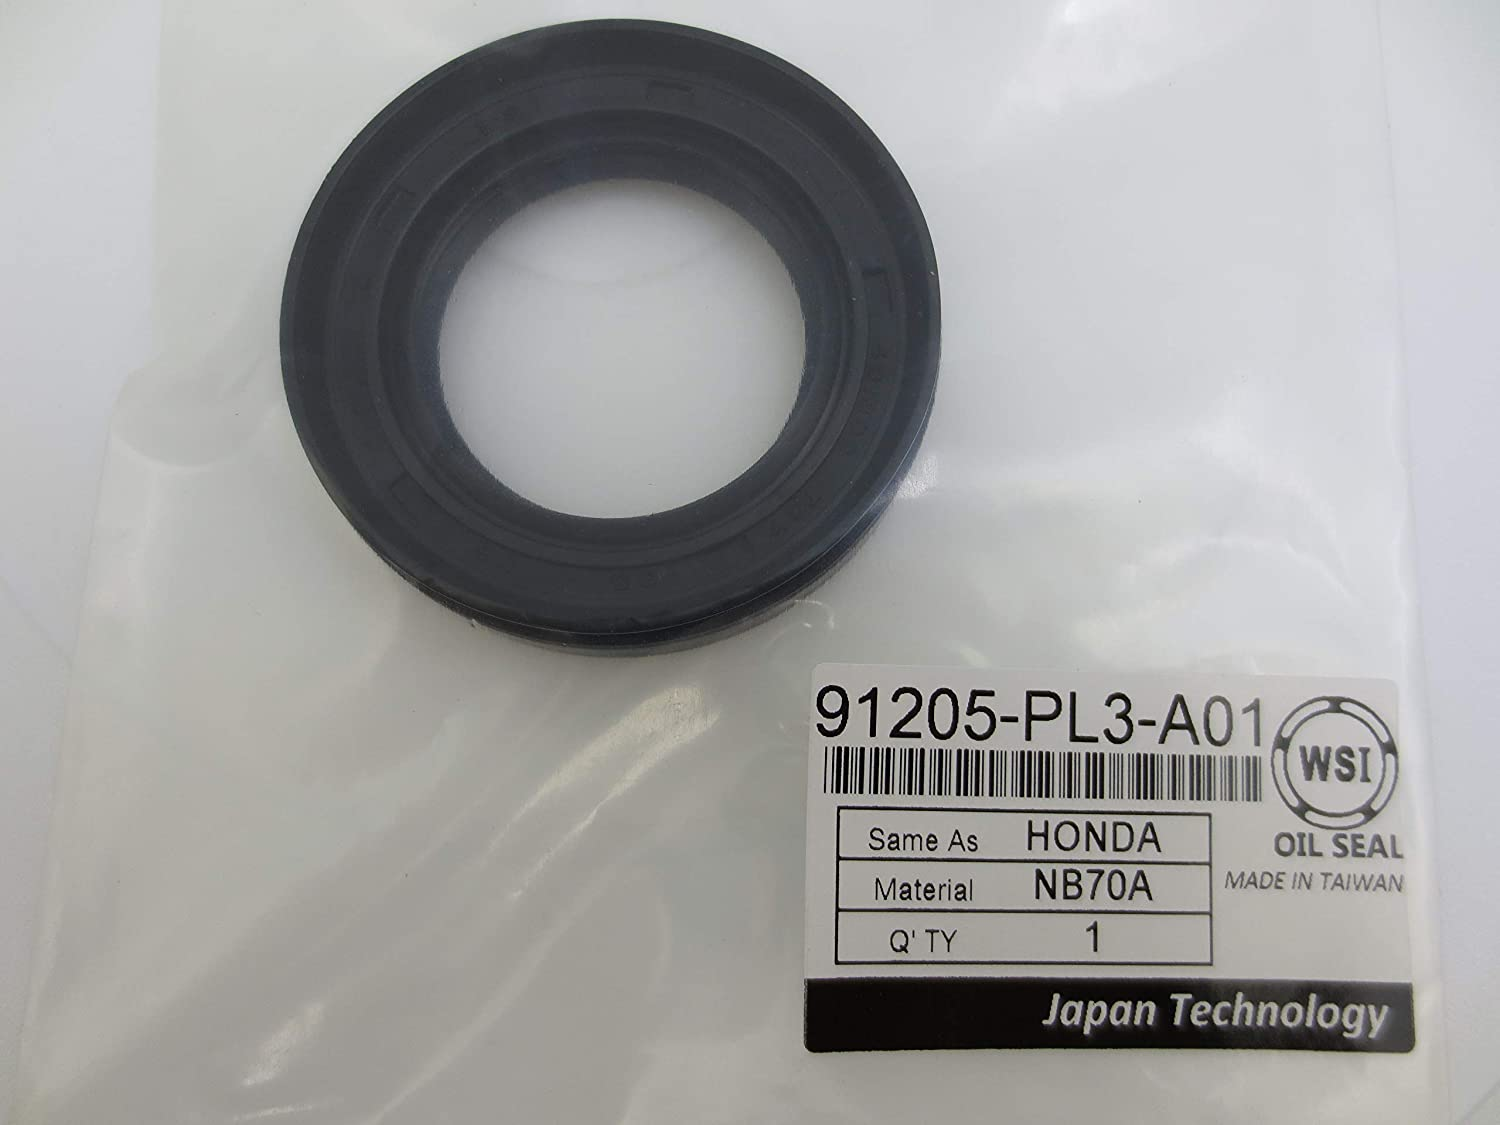 WSI Max 58% OFF 91205-PL3-A01 Oil Seal For Shaft Drive Houston Mall Front for Honda